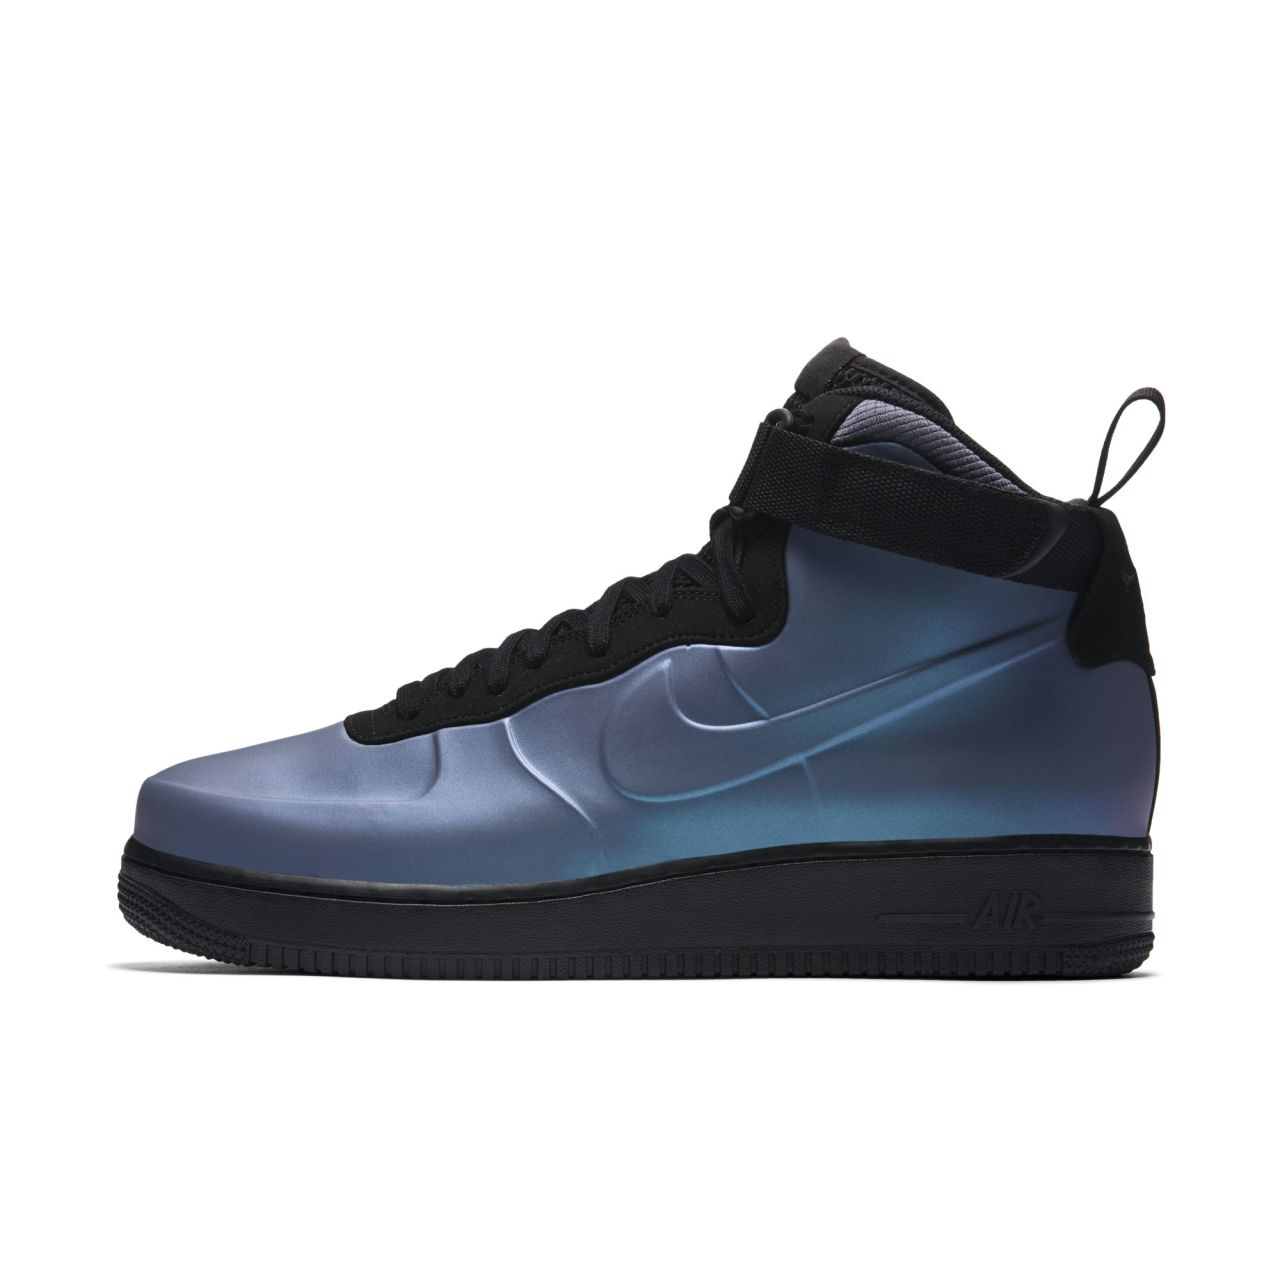 new style 5a746 01ac9 Nike Air Force 1 Foamposite returns this year   Analykix